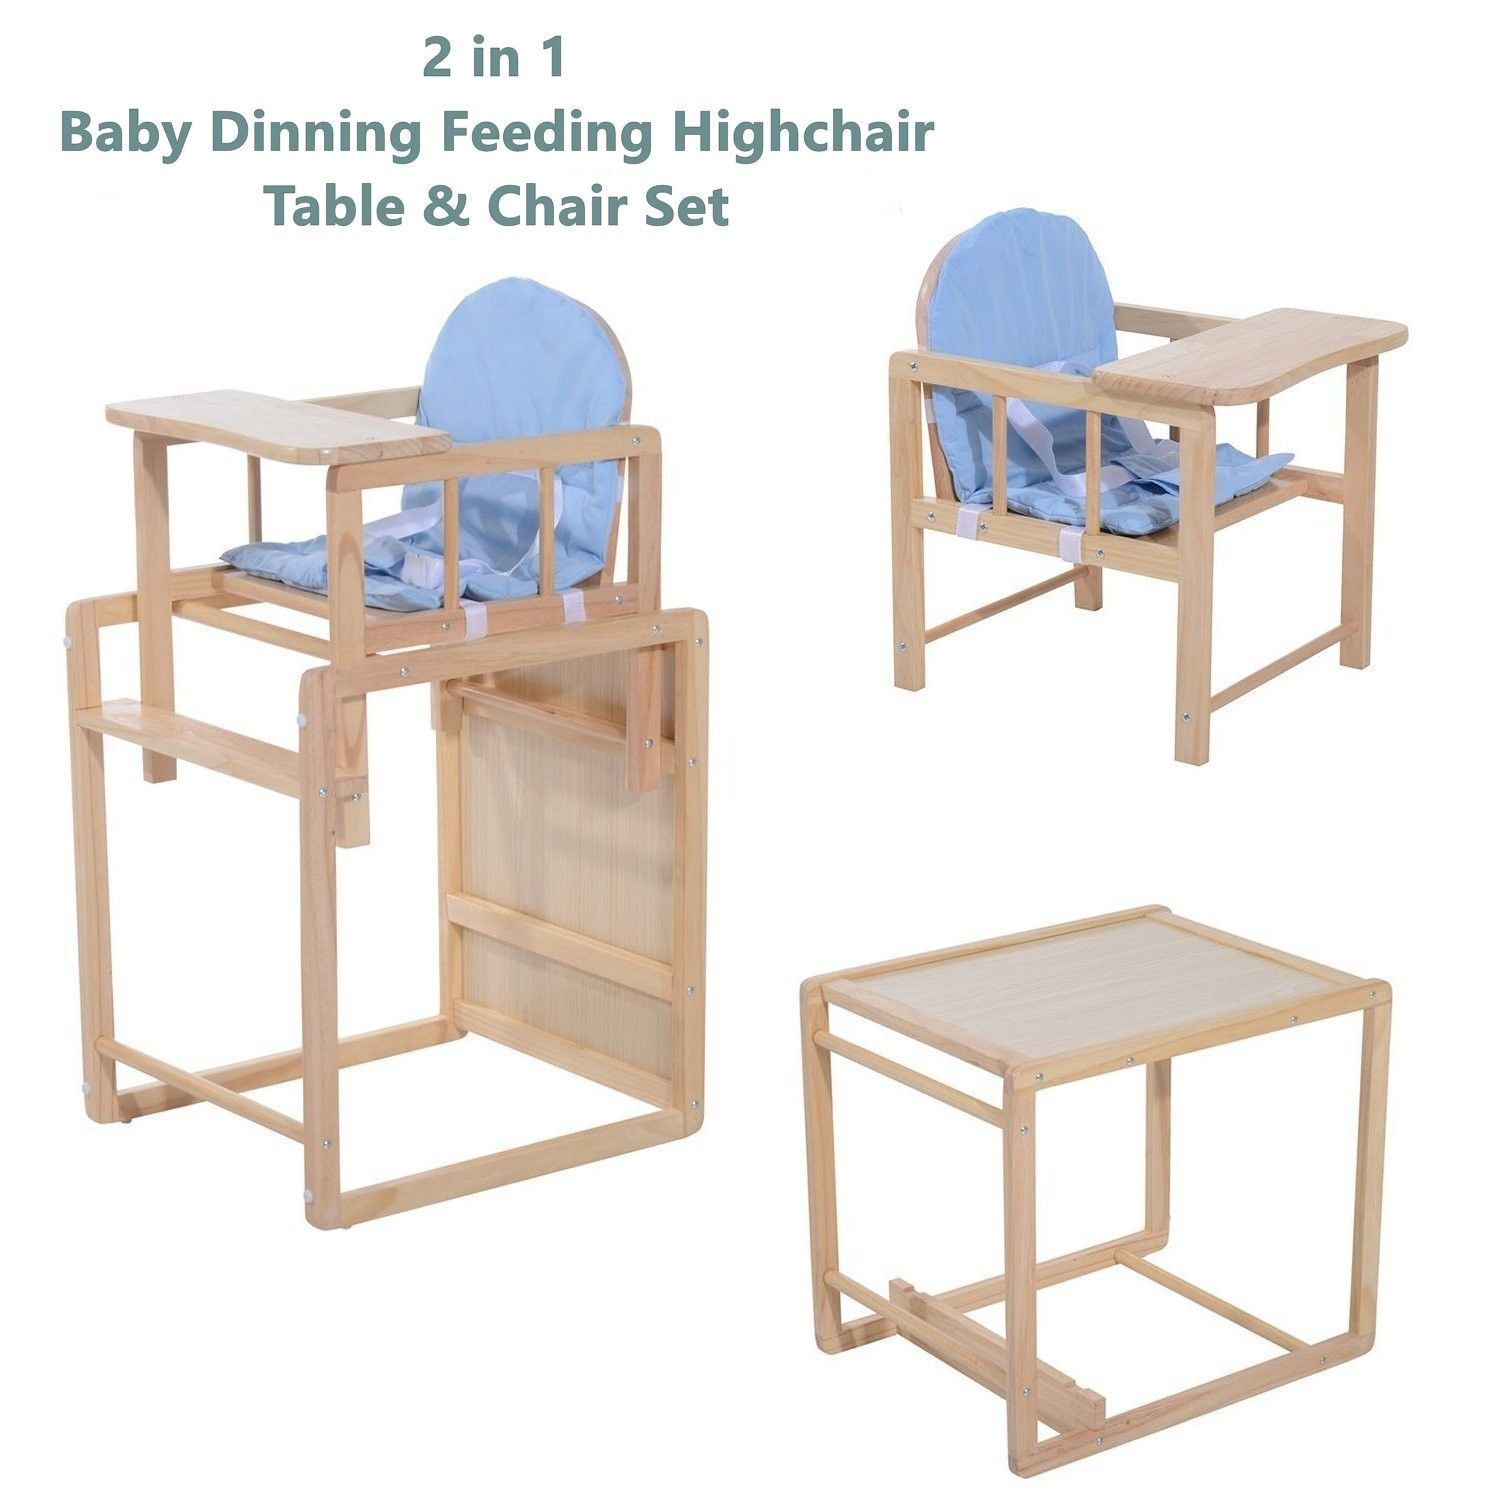 Peachy 2 In 1 Baby Wooden Feeding High Chair And 50 Similar Items Andrewgaddart Wooden Chair Designs For Living Room Andrewgaddartcom